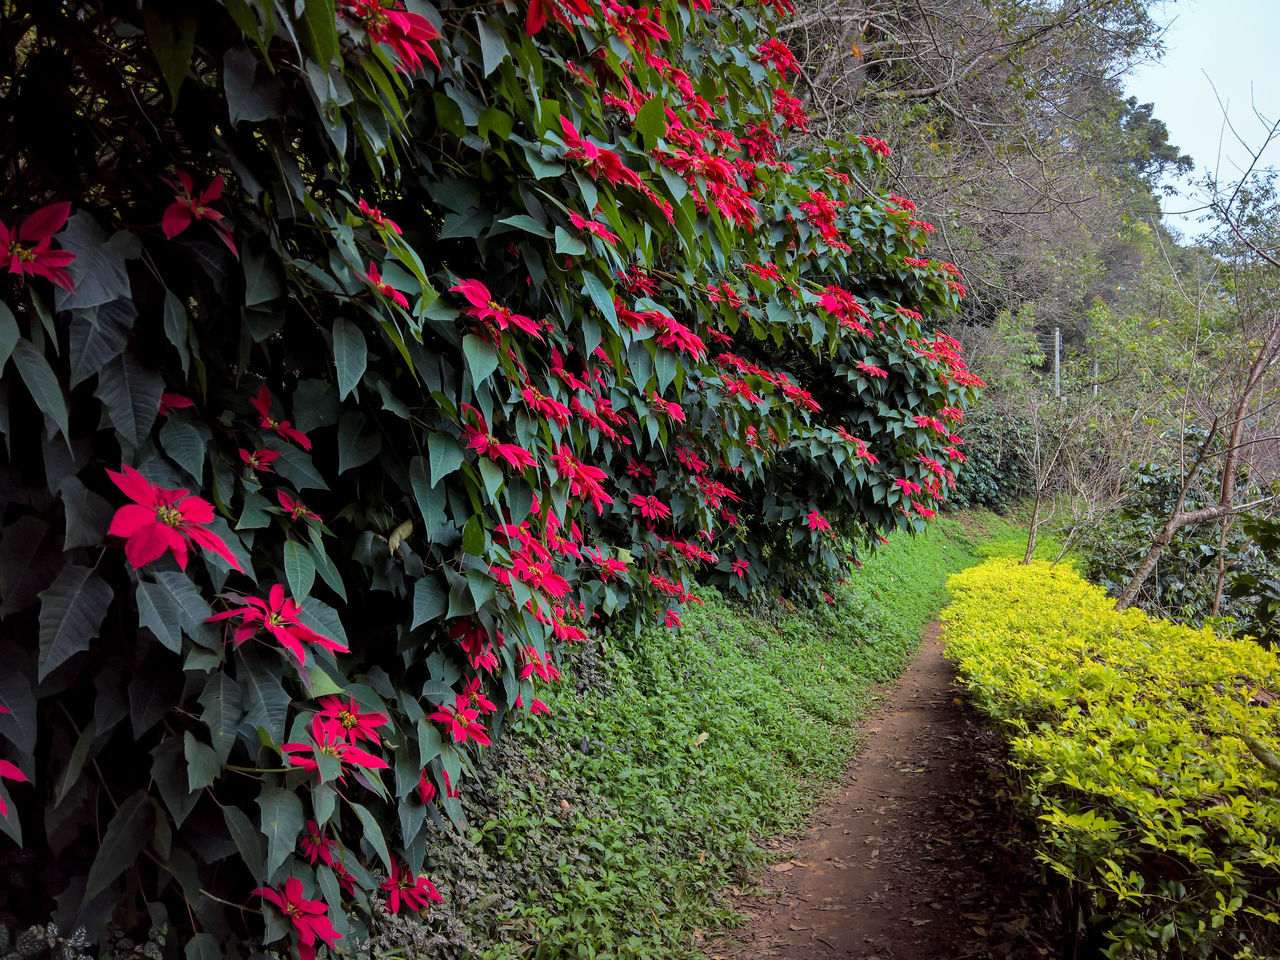 growth, plant, flower, nature, beauty in nature, outdoors, red, blossom, day, petal, freshness, no people, tranquility, leaf, fragility, blooming, flowerbed, tree, flower head